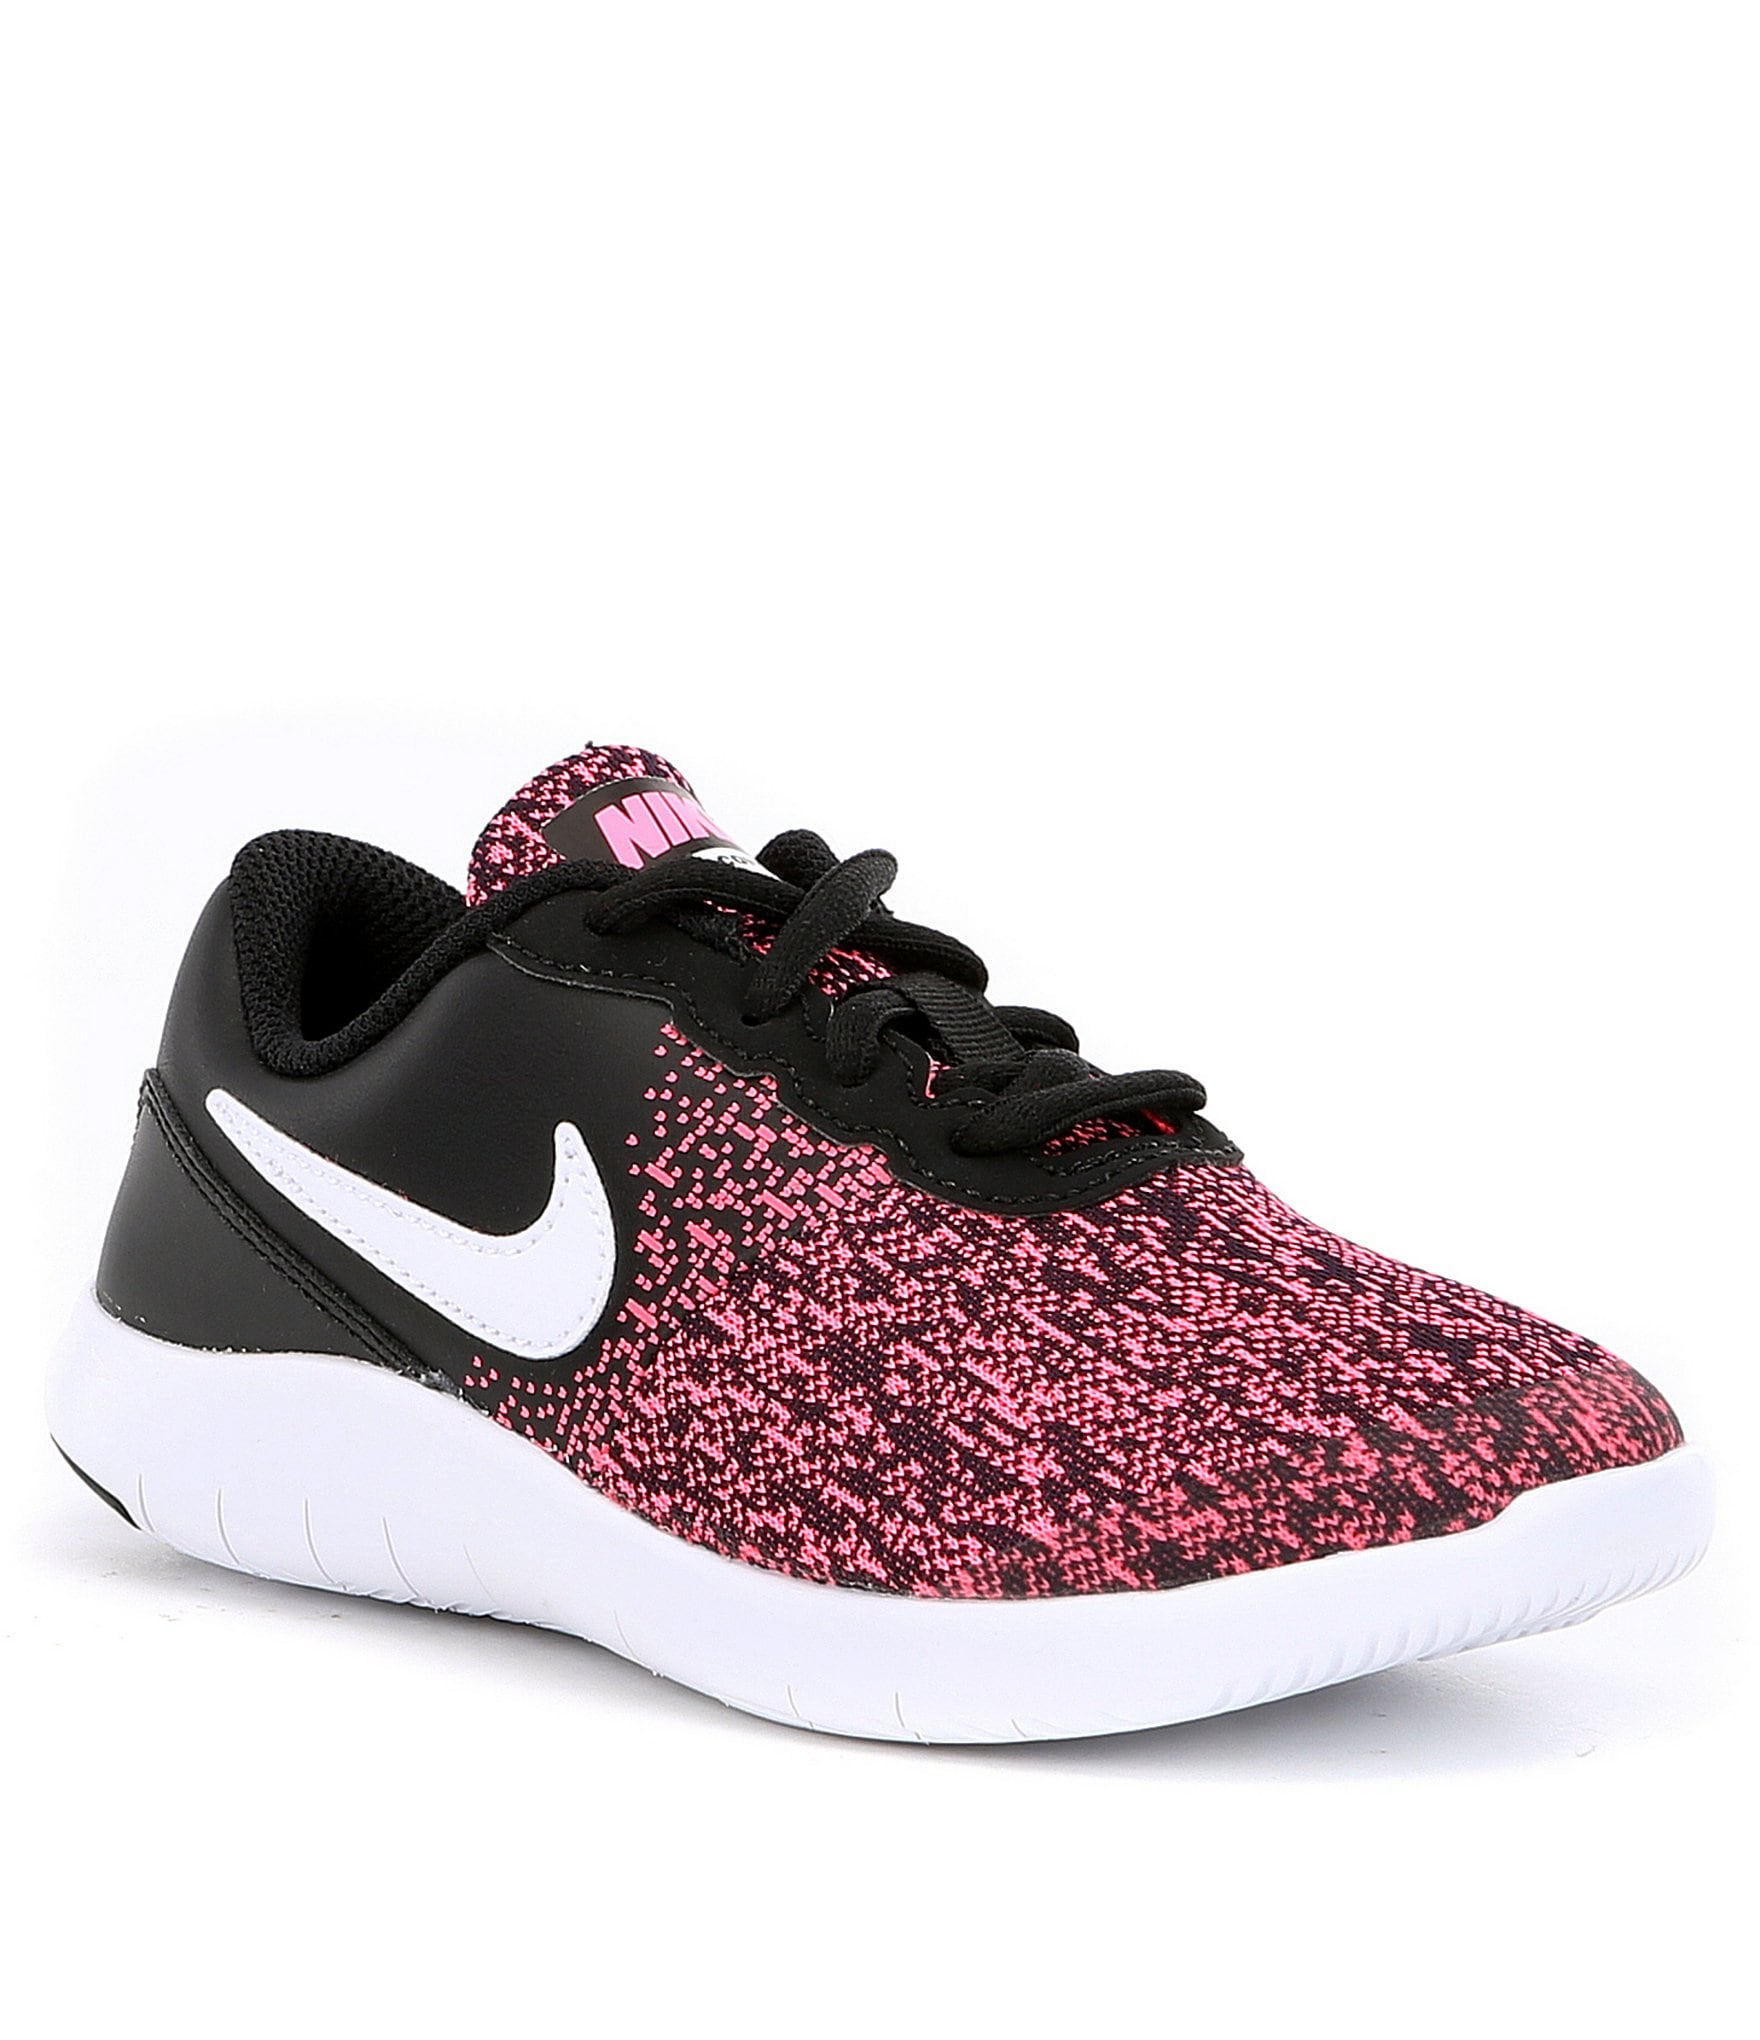 Nike Girls´ Flex Contact Running Shoes | Dillards